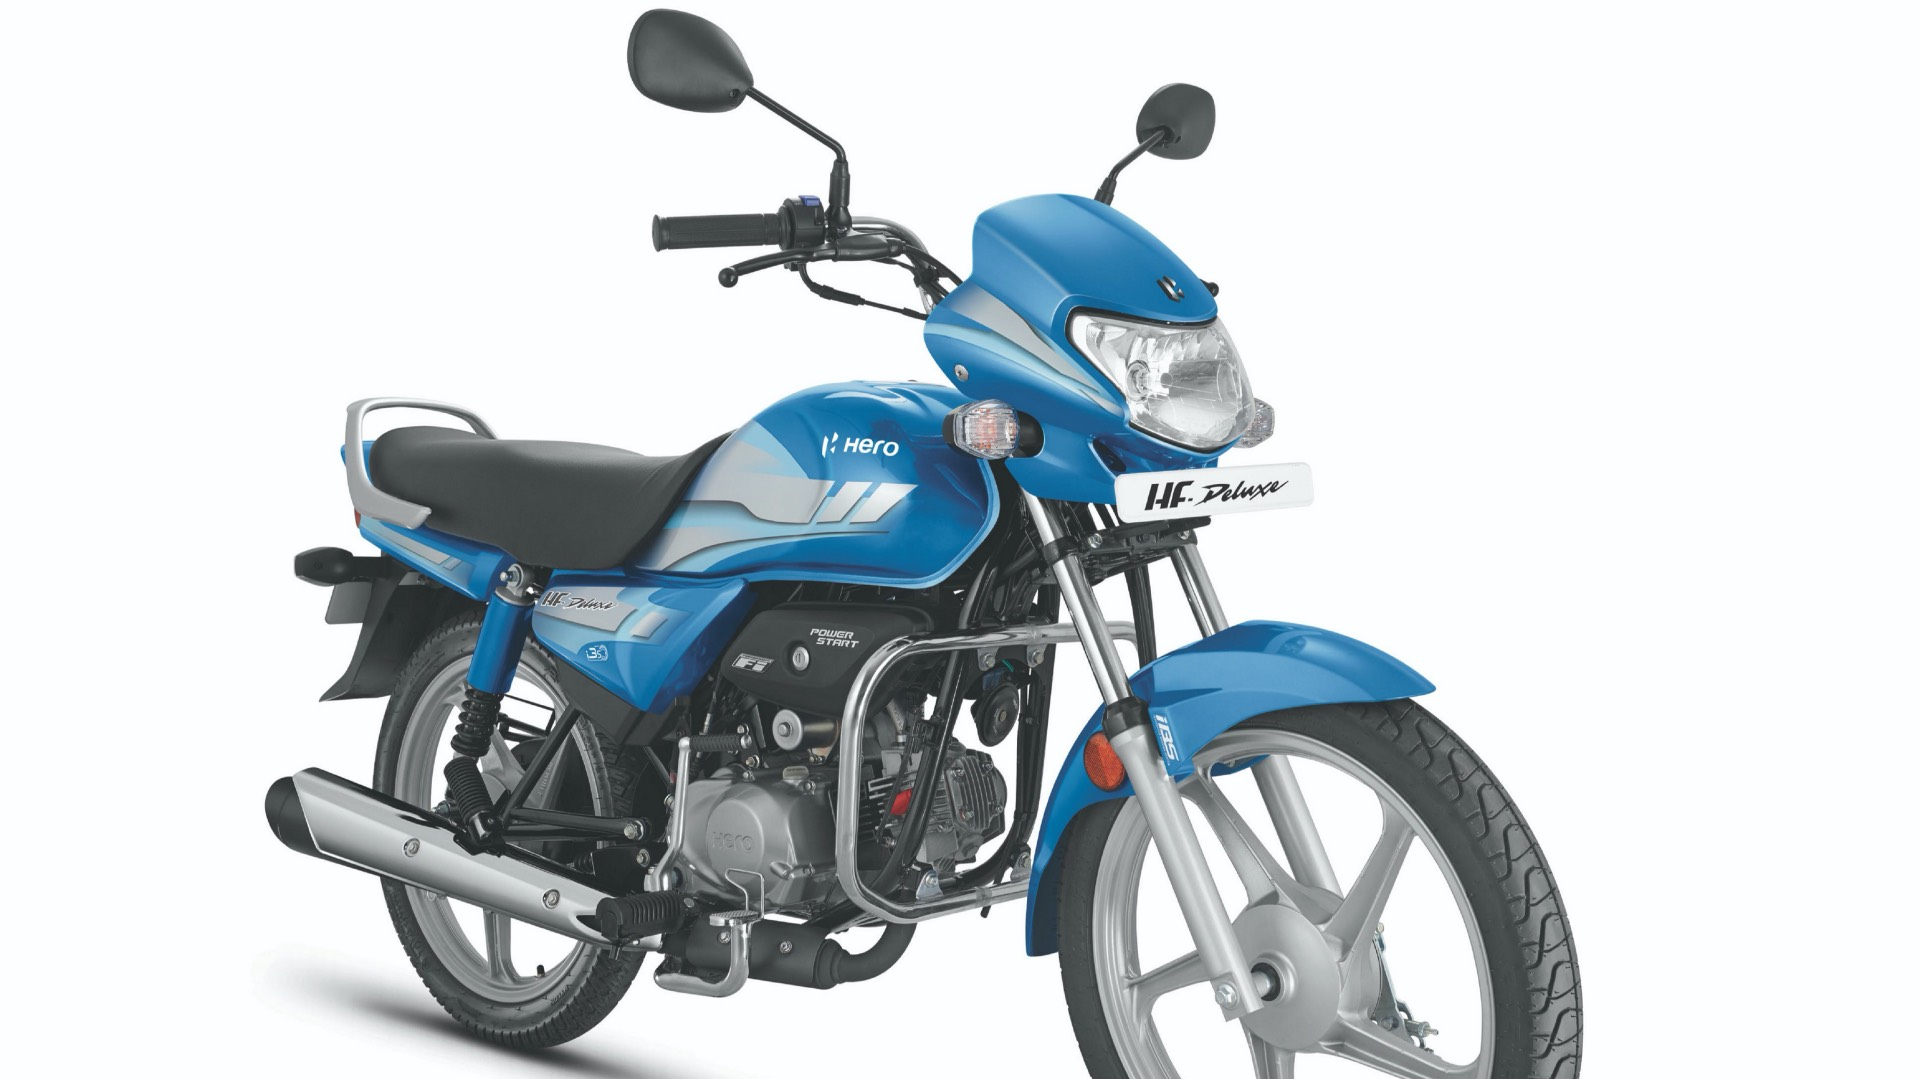 Hero Motocorp Launches Hf Deluxe With 100cc Bs6 Engine For 55 925 Shifting Gears